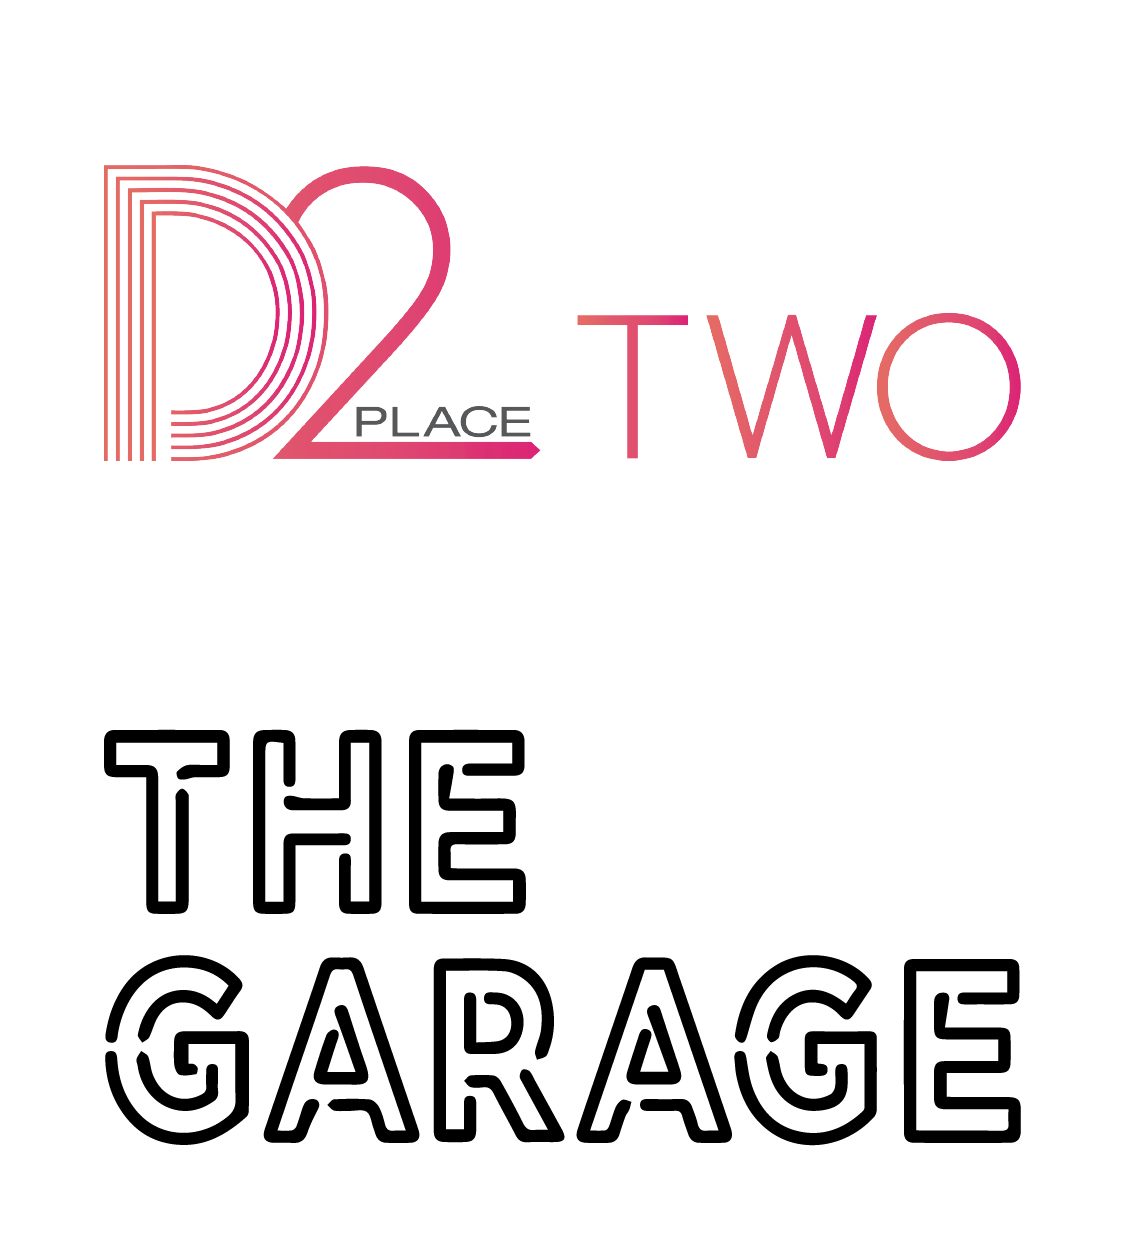 D2 place two & The garage